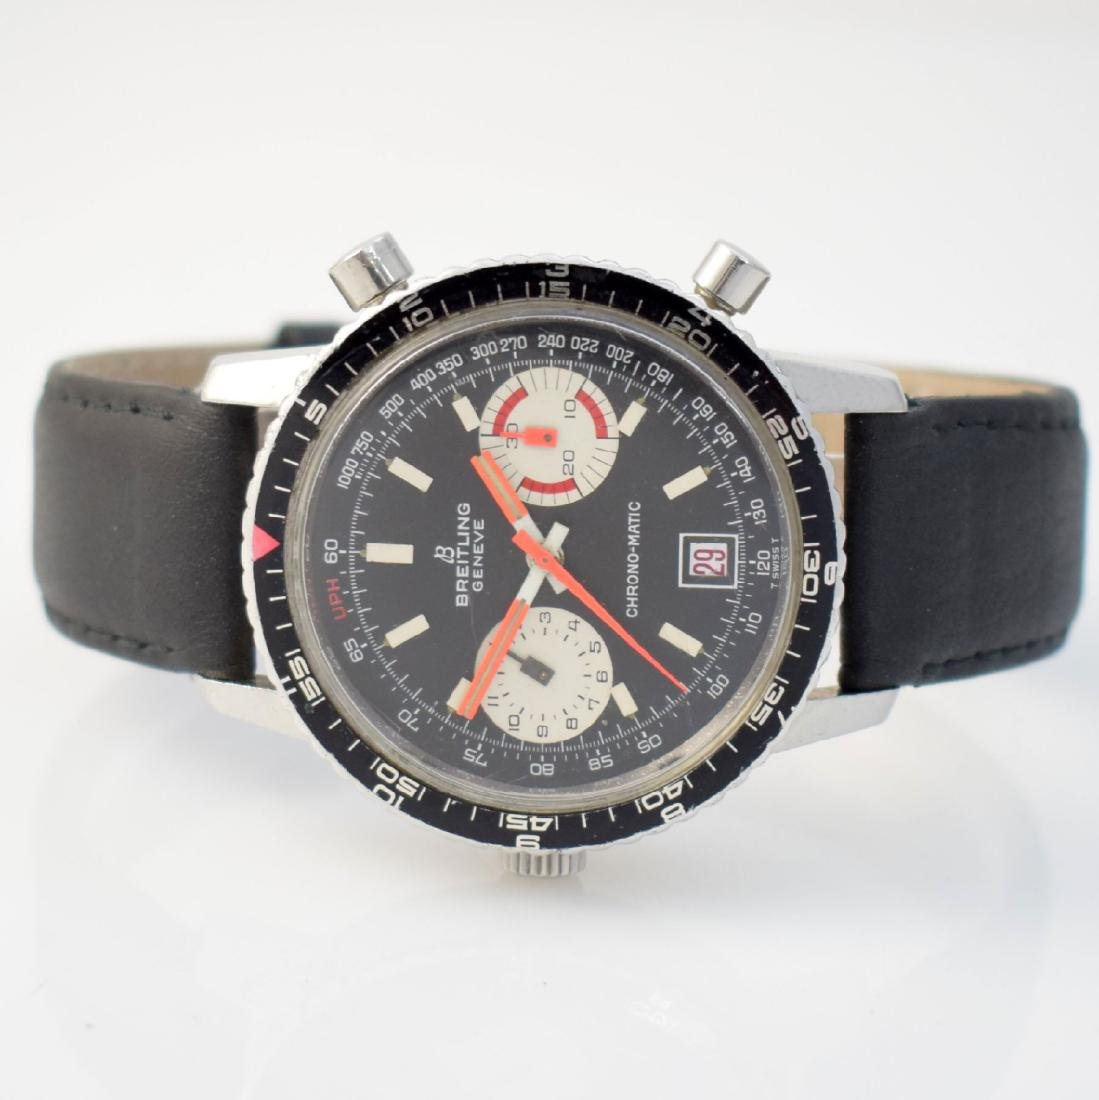 BREITLING Chrono-Matic gents wristwatch with